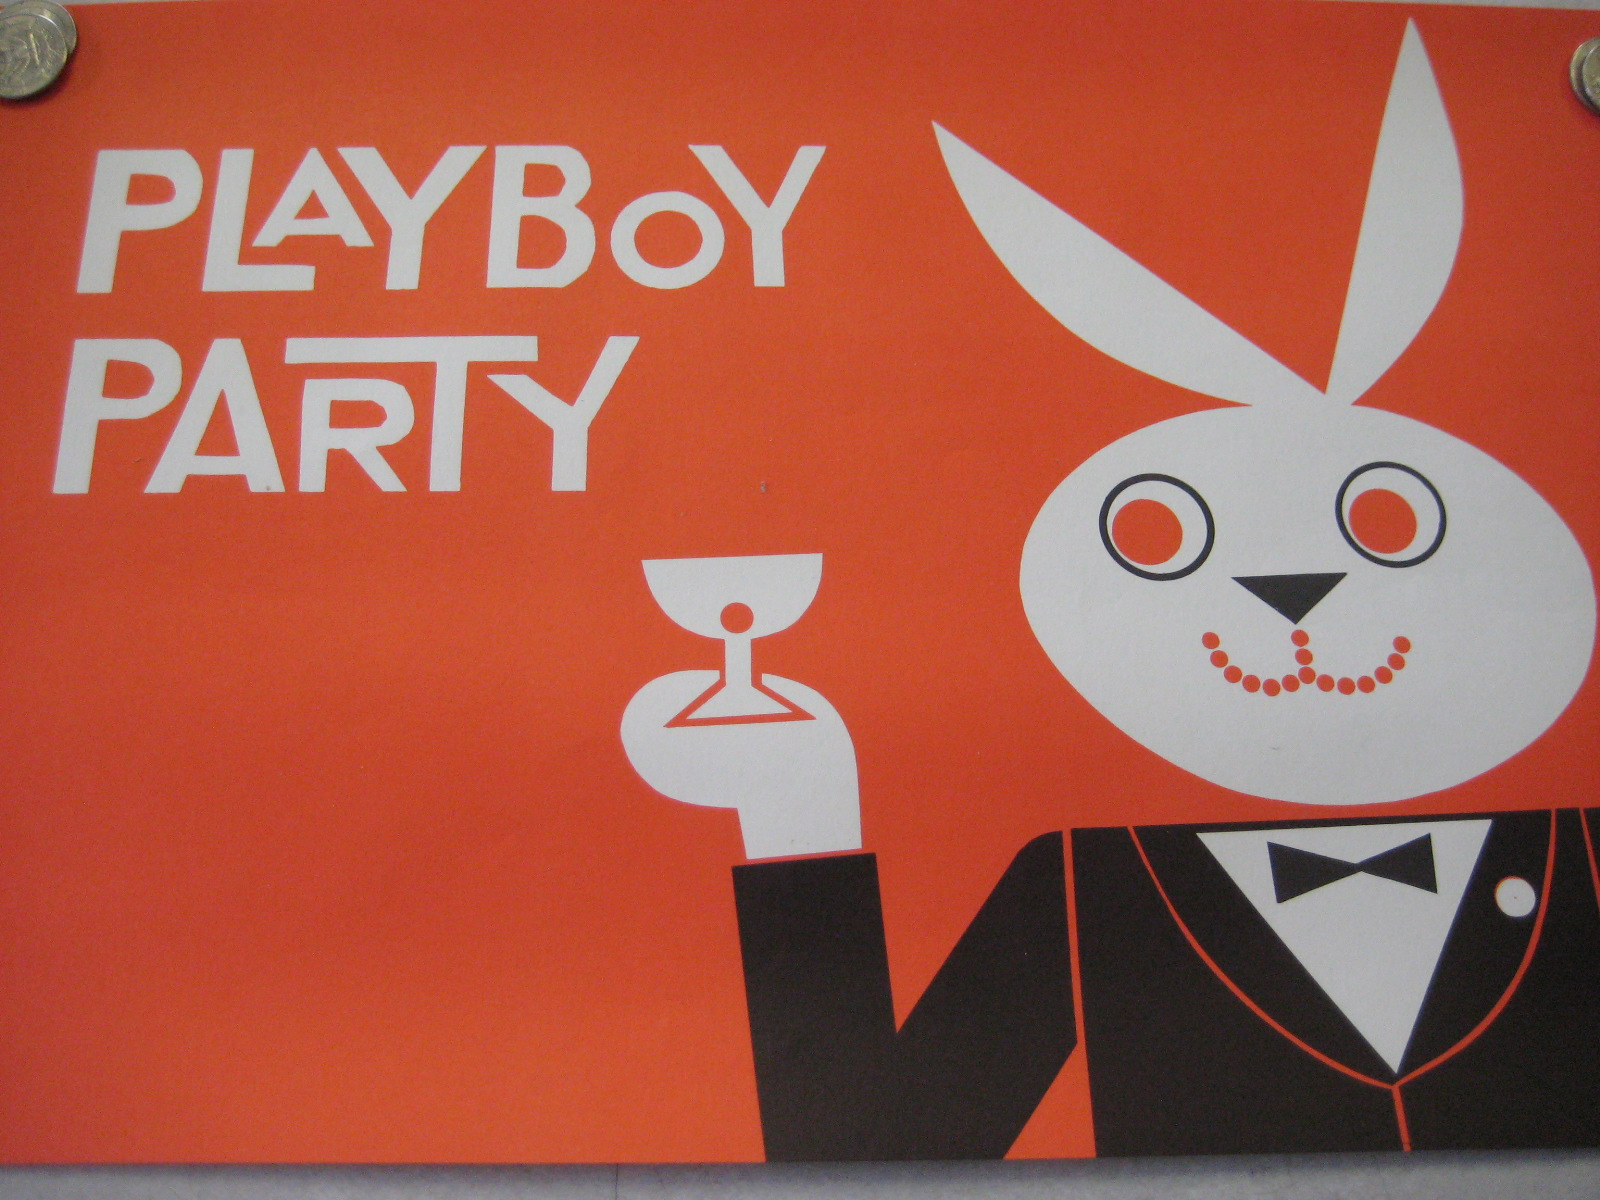 Playboy Party Place mat Orange